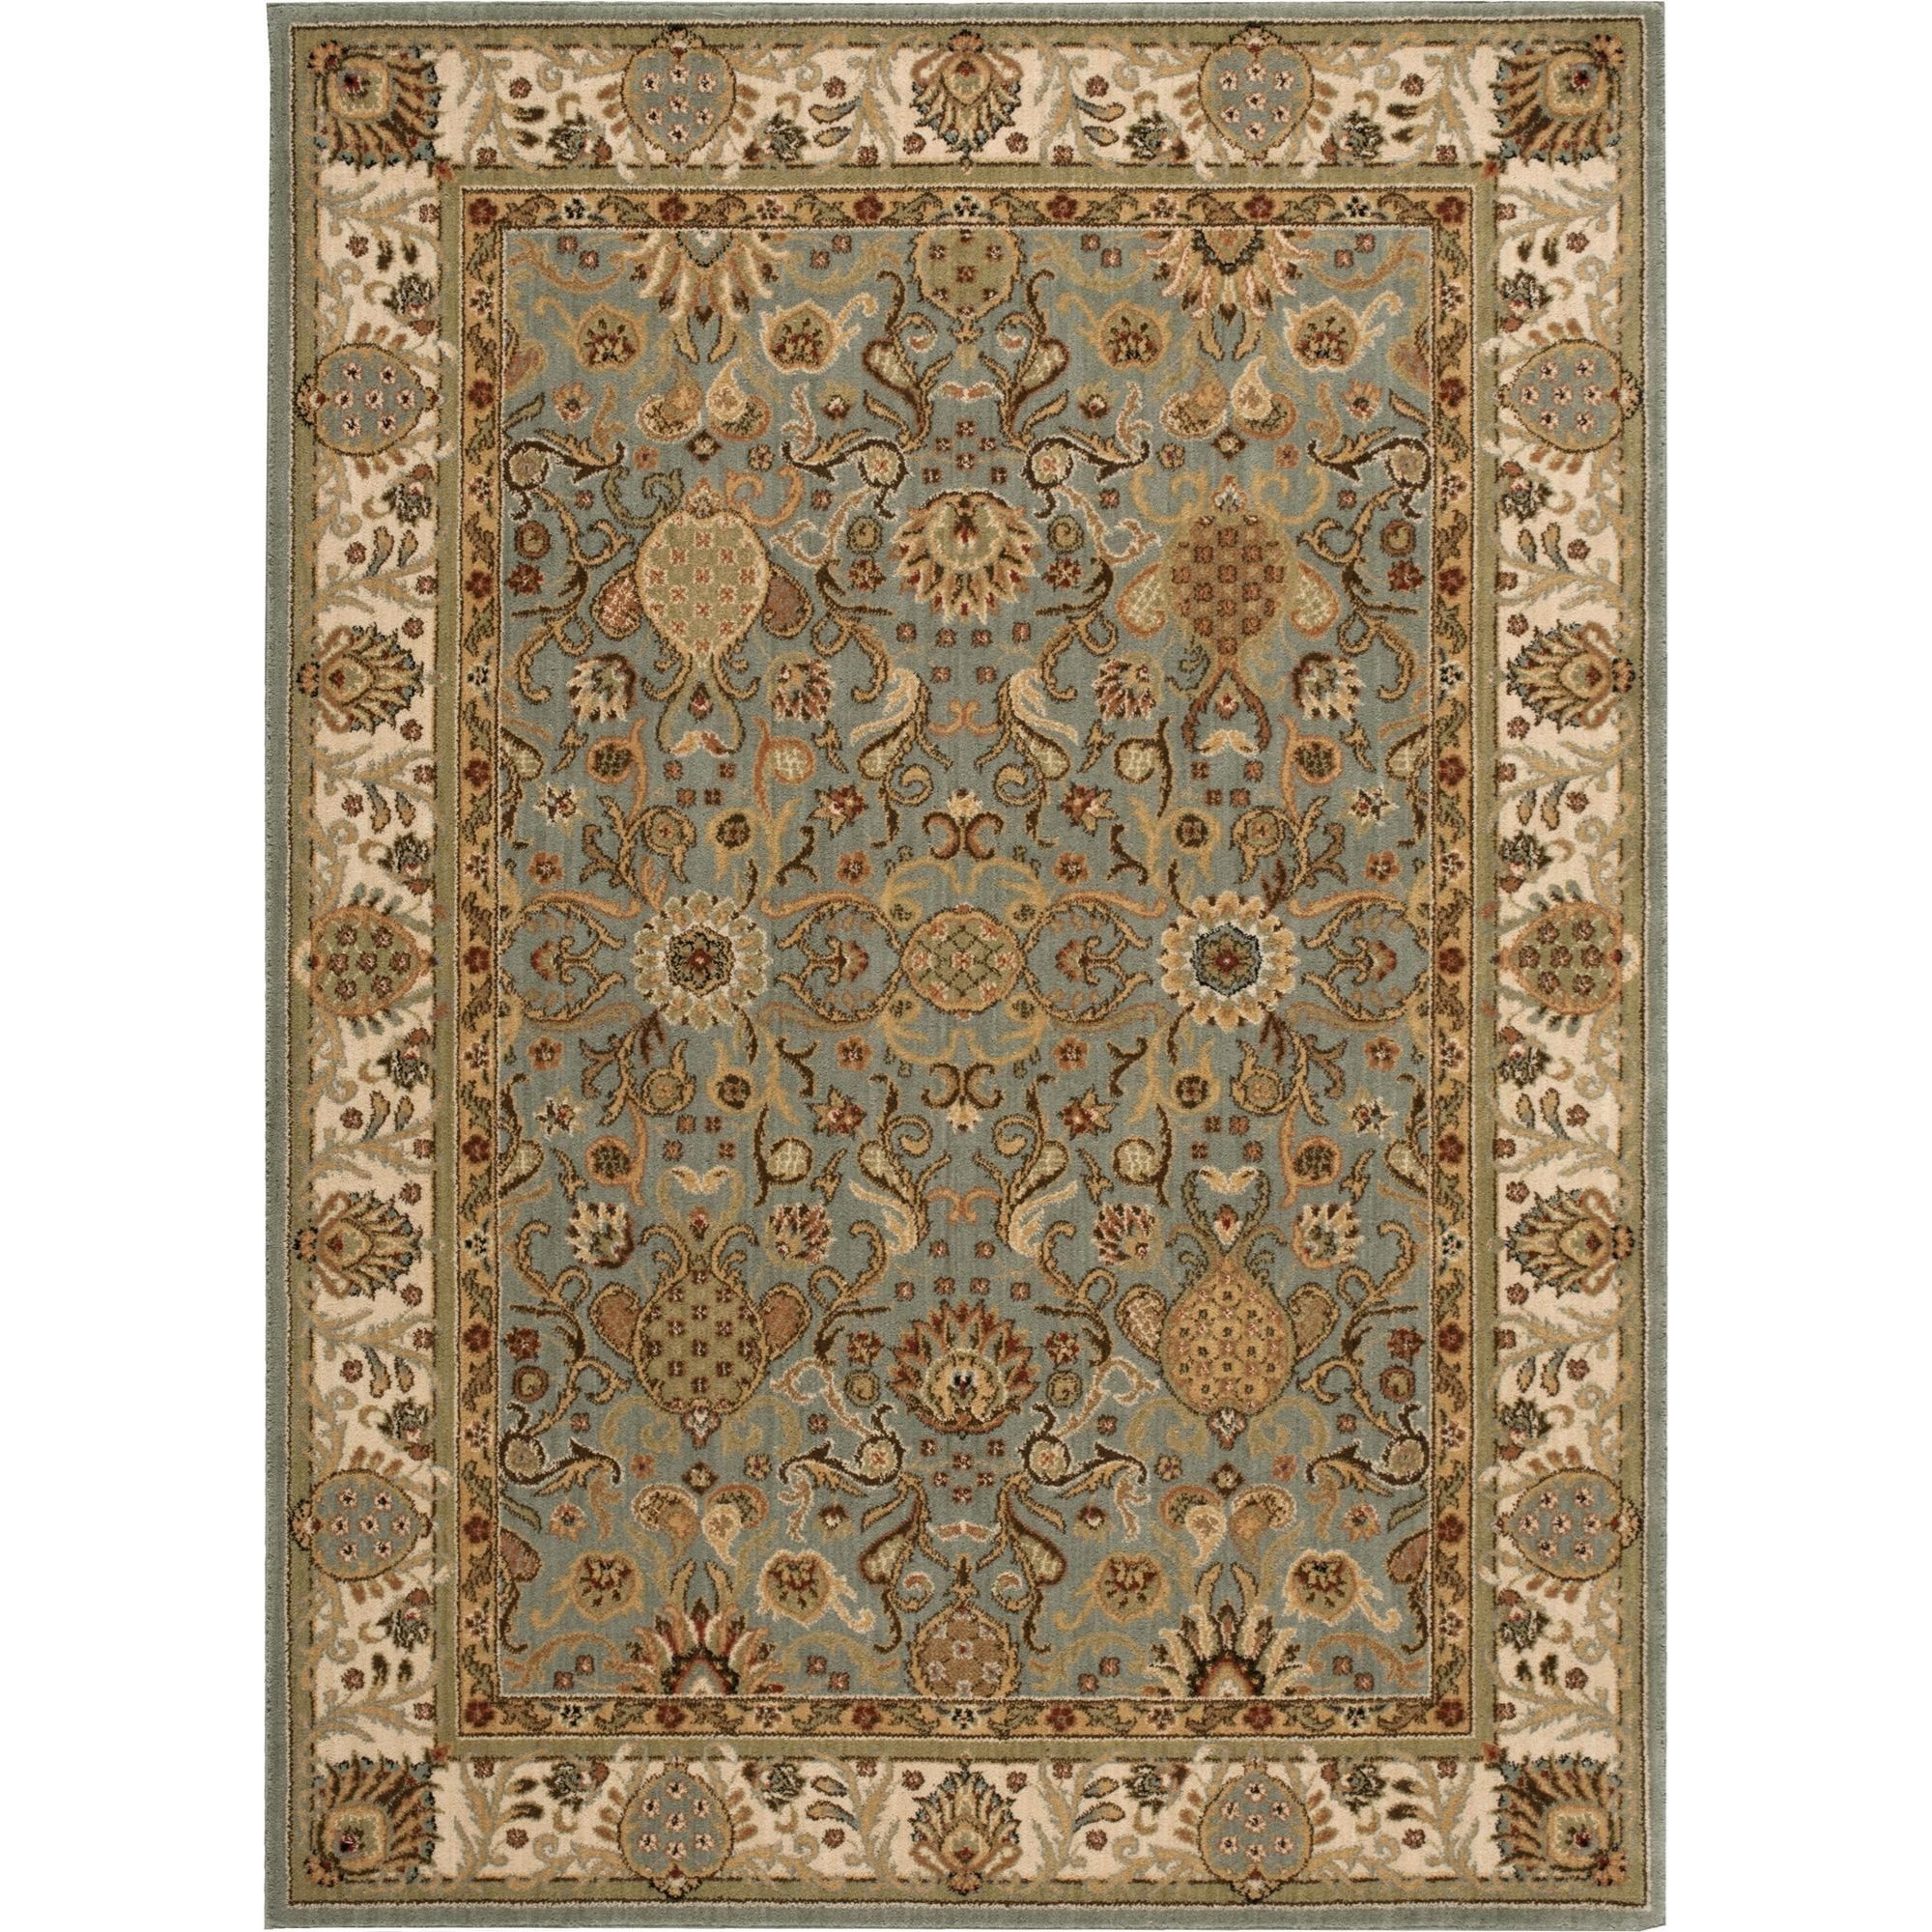 "Nourison Kathy Ireland Home presents Lumiere 3'6"" x 5'6"" Slate Blue Area Rug - Item Number: 05215"